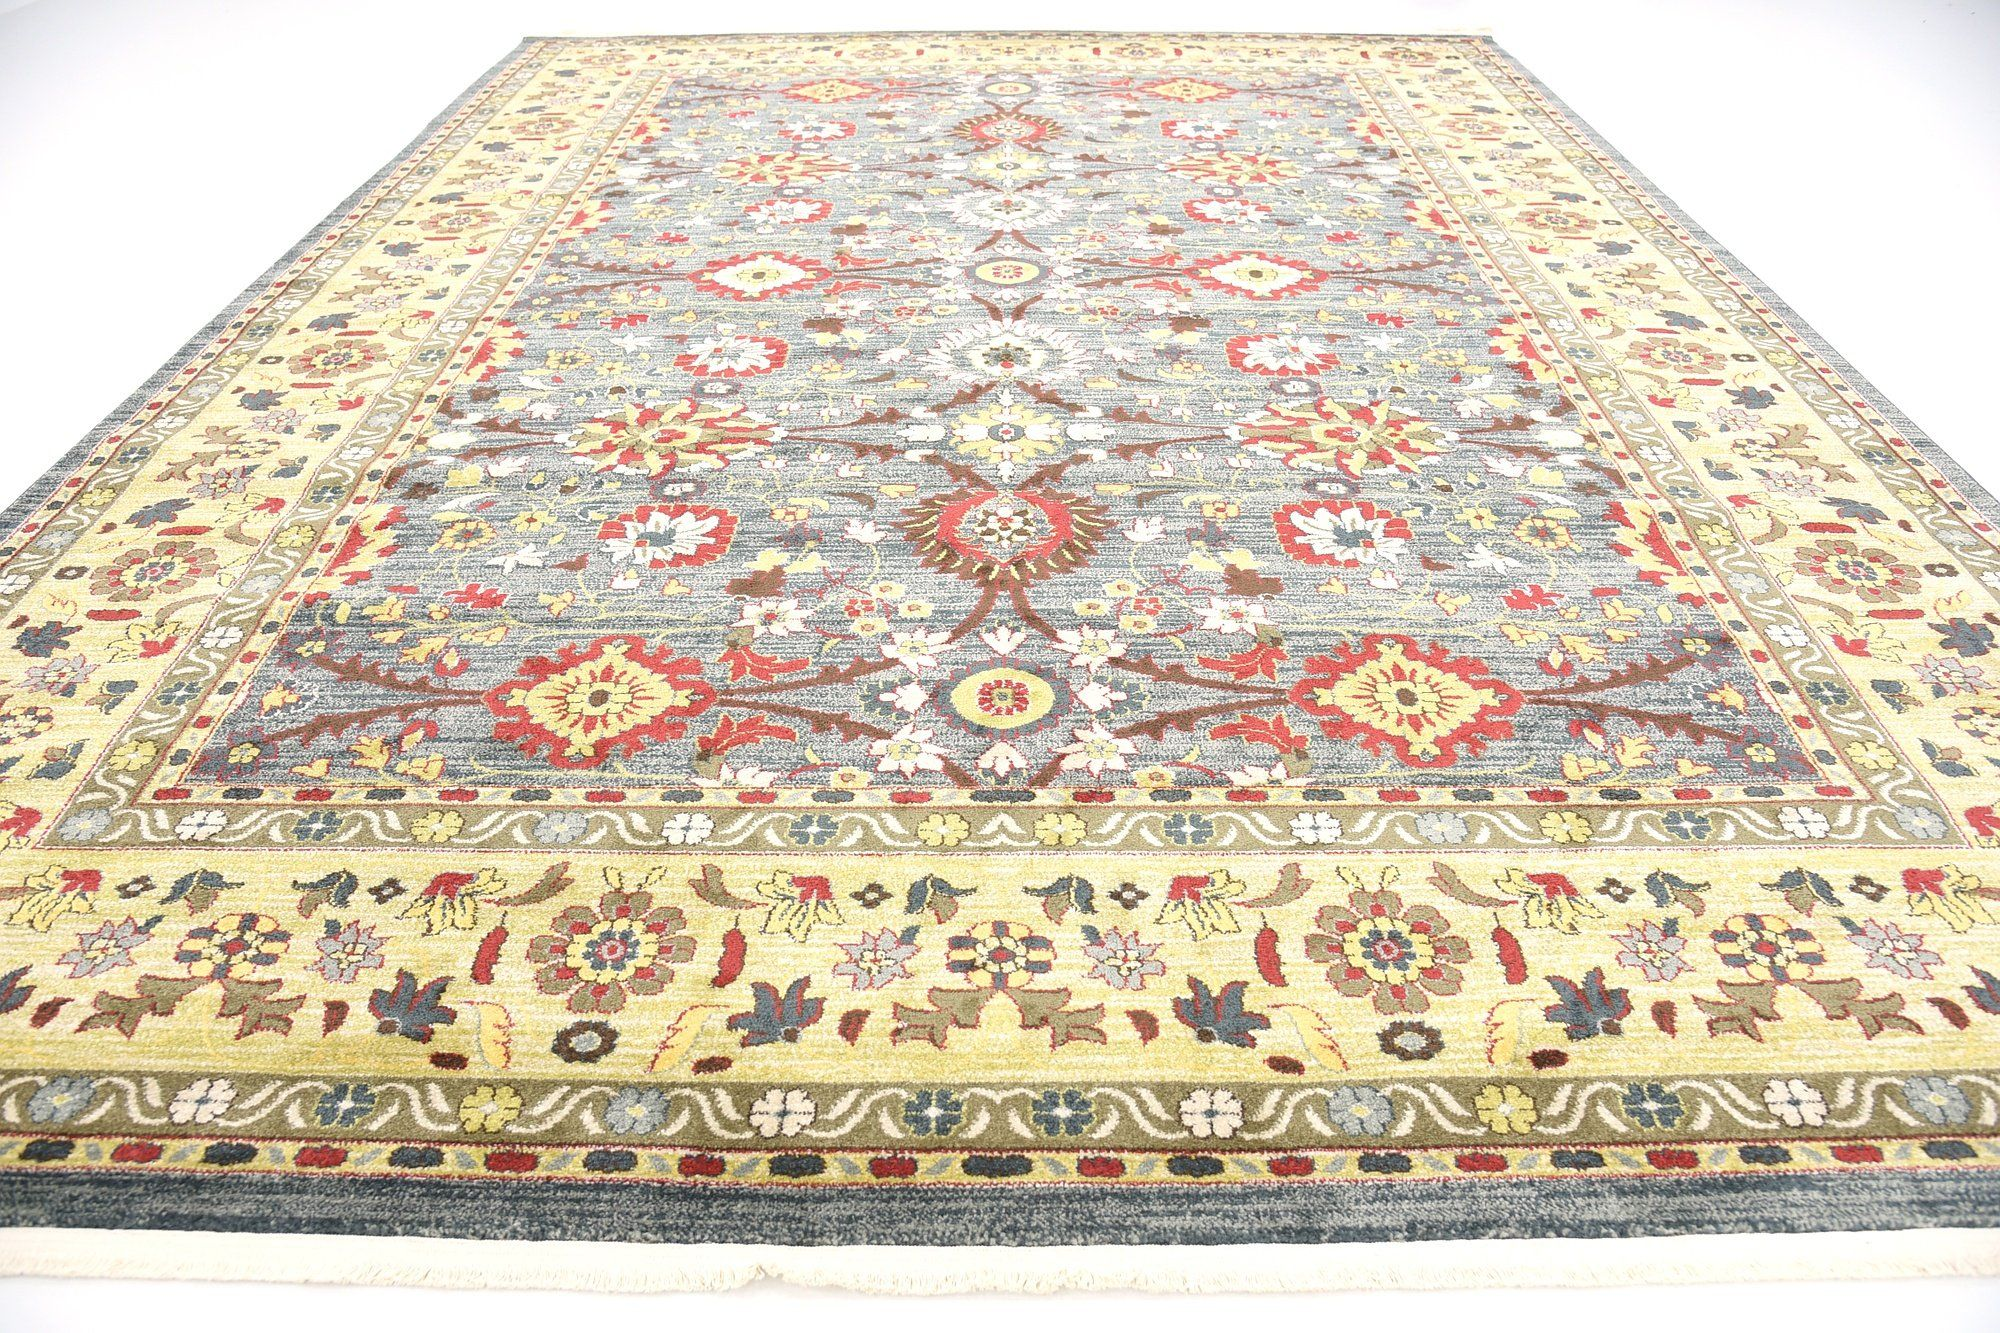 A2z Rug Heritage Collection Persian Traditional Area Rug Blue Light Green 10 X 13 Ft High Class Living Dinni Traditional Area Rugs Blue Area Rugs Dinning Room